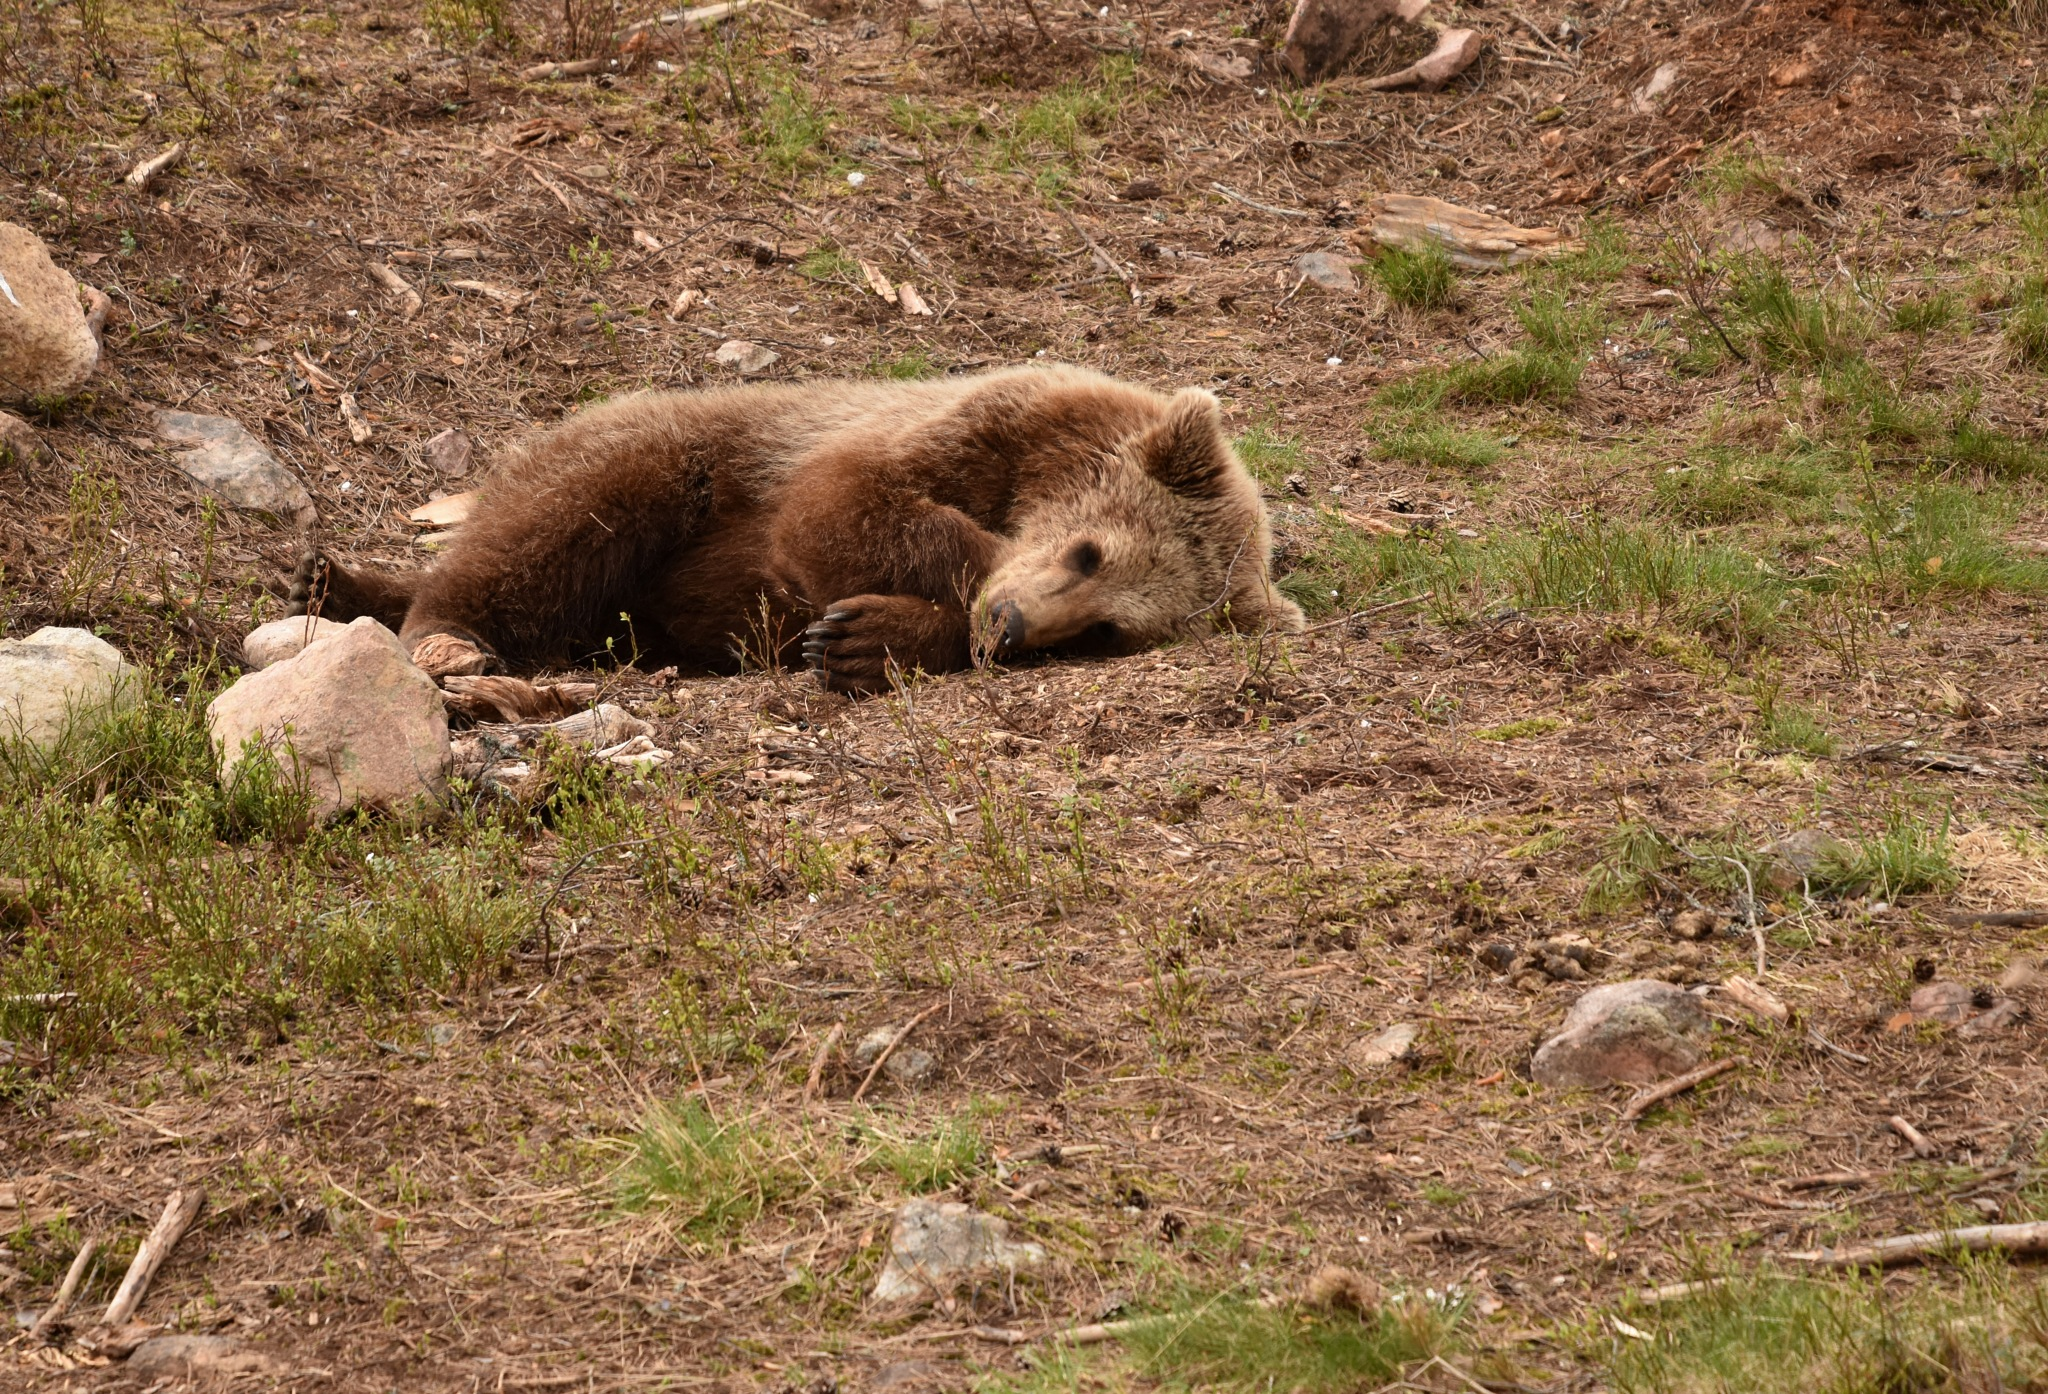 Tired bear at zoo by monica.westerholm.5